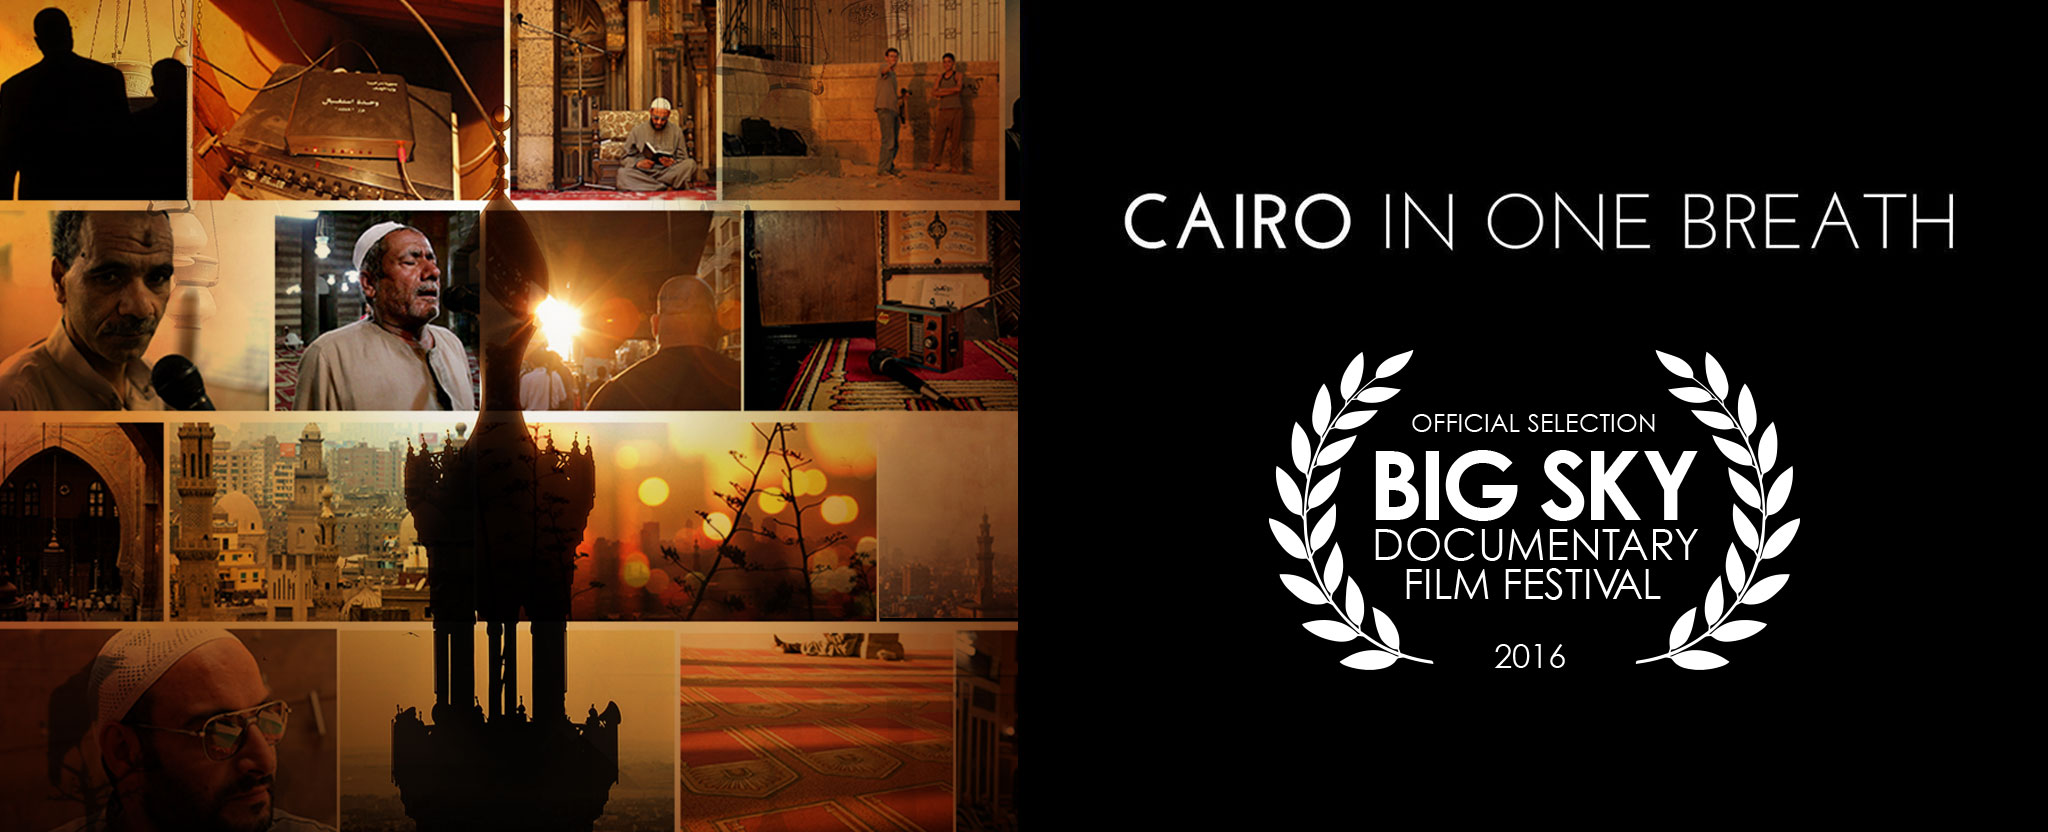 Cairo In One Breath | Big Sky Documentary Film Festival